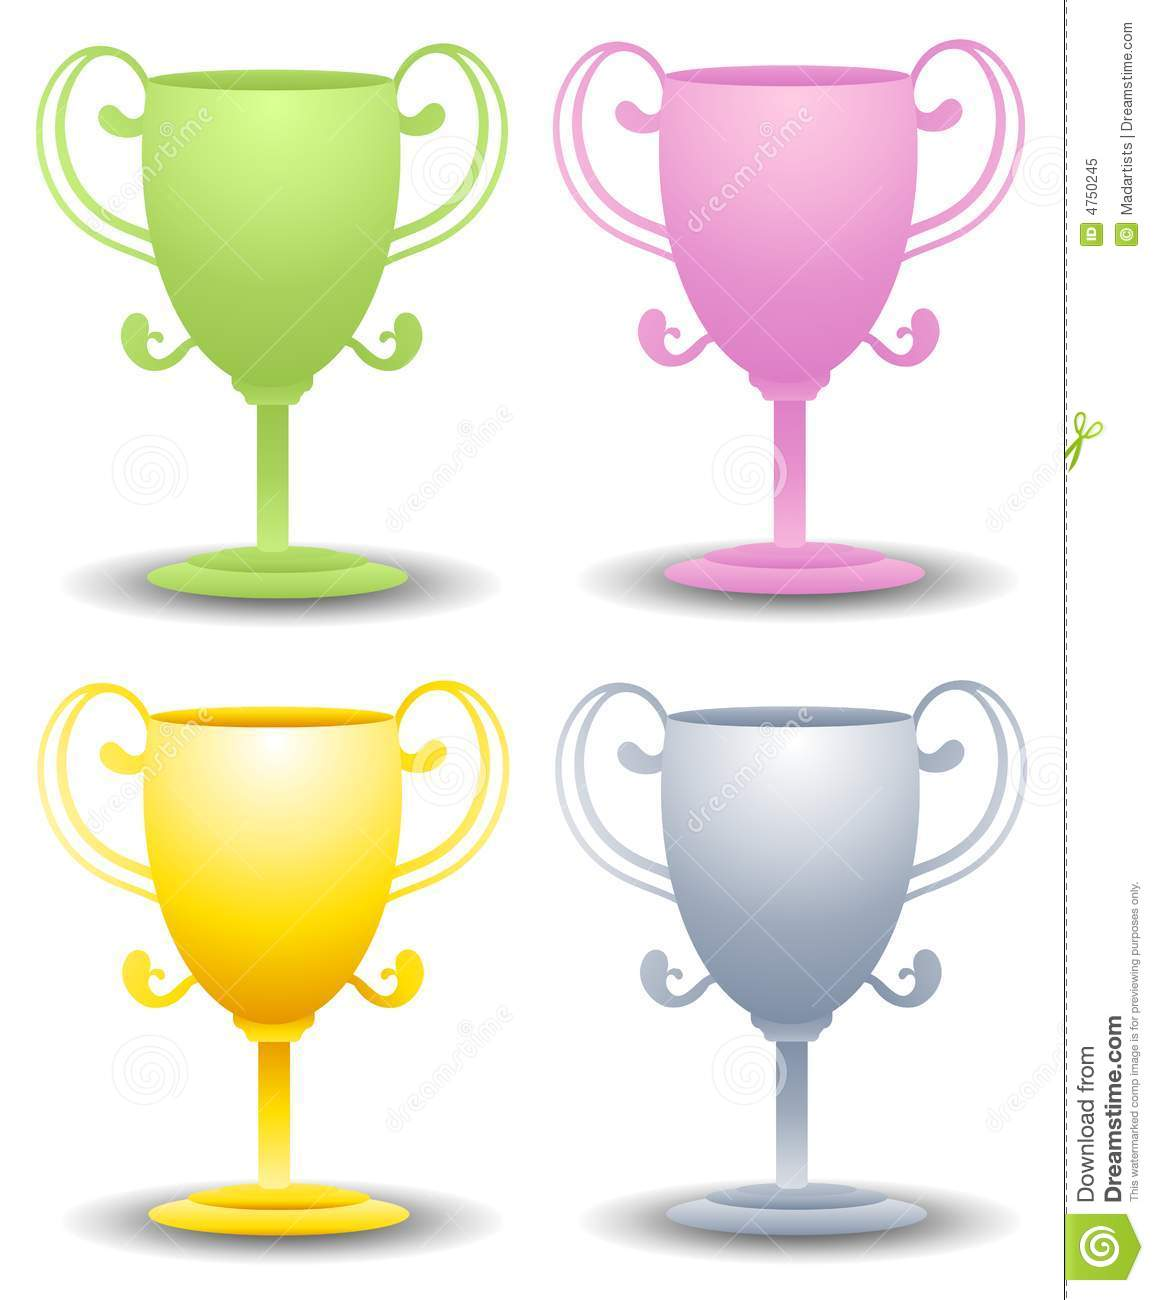 Assorted Trophy Clip Art Royalty Free Stock Photo - Image: 4750245